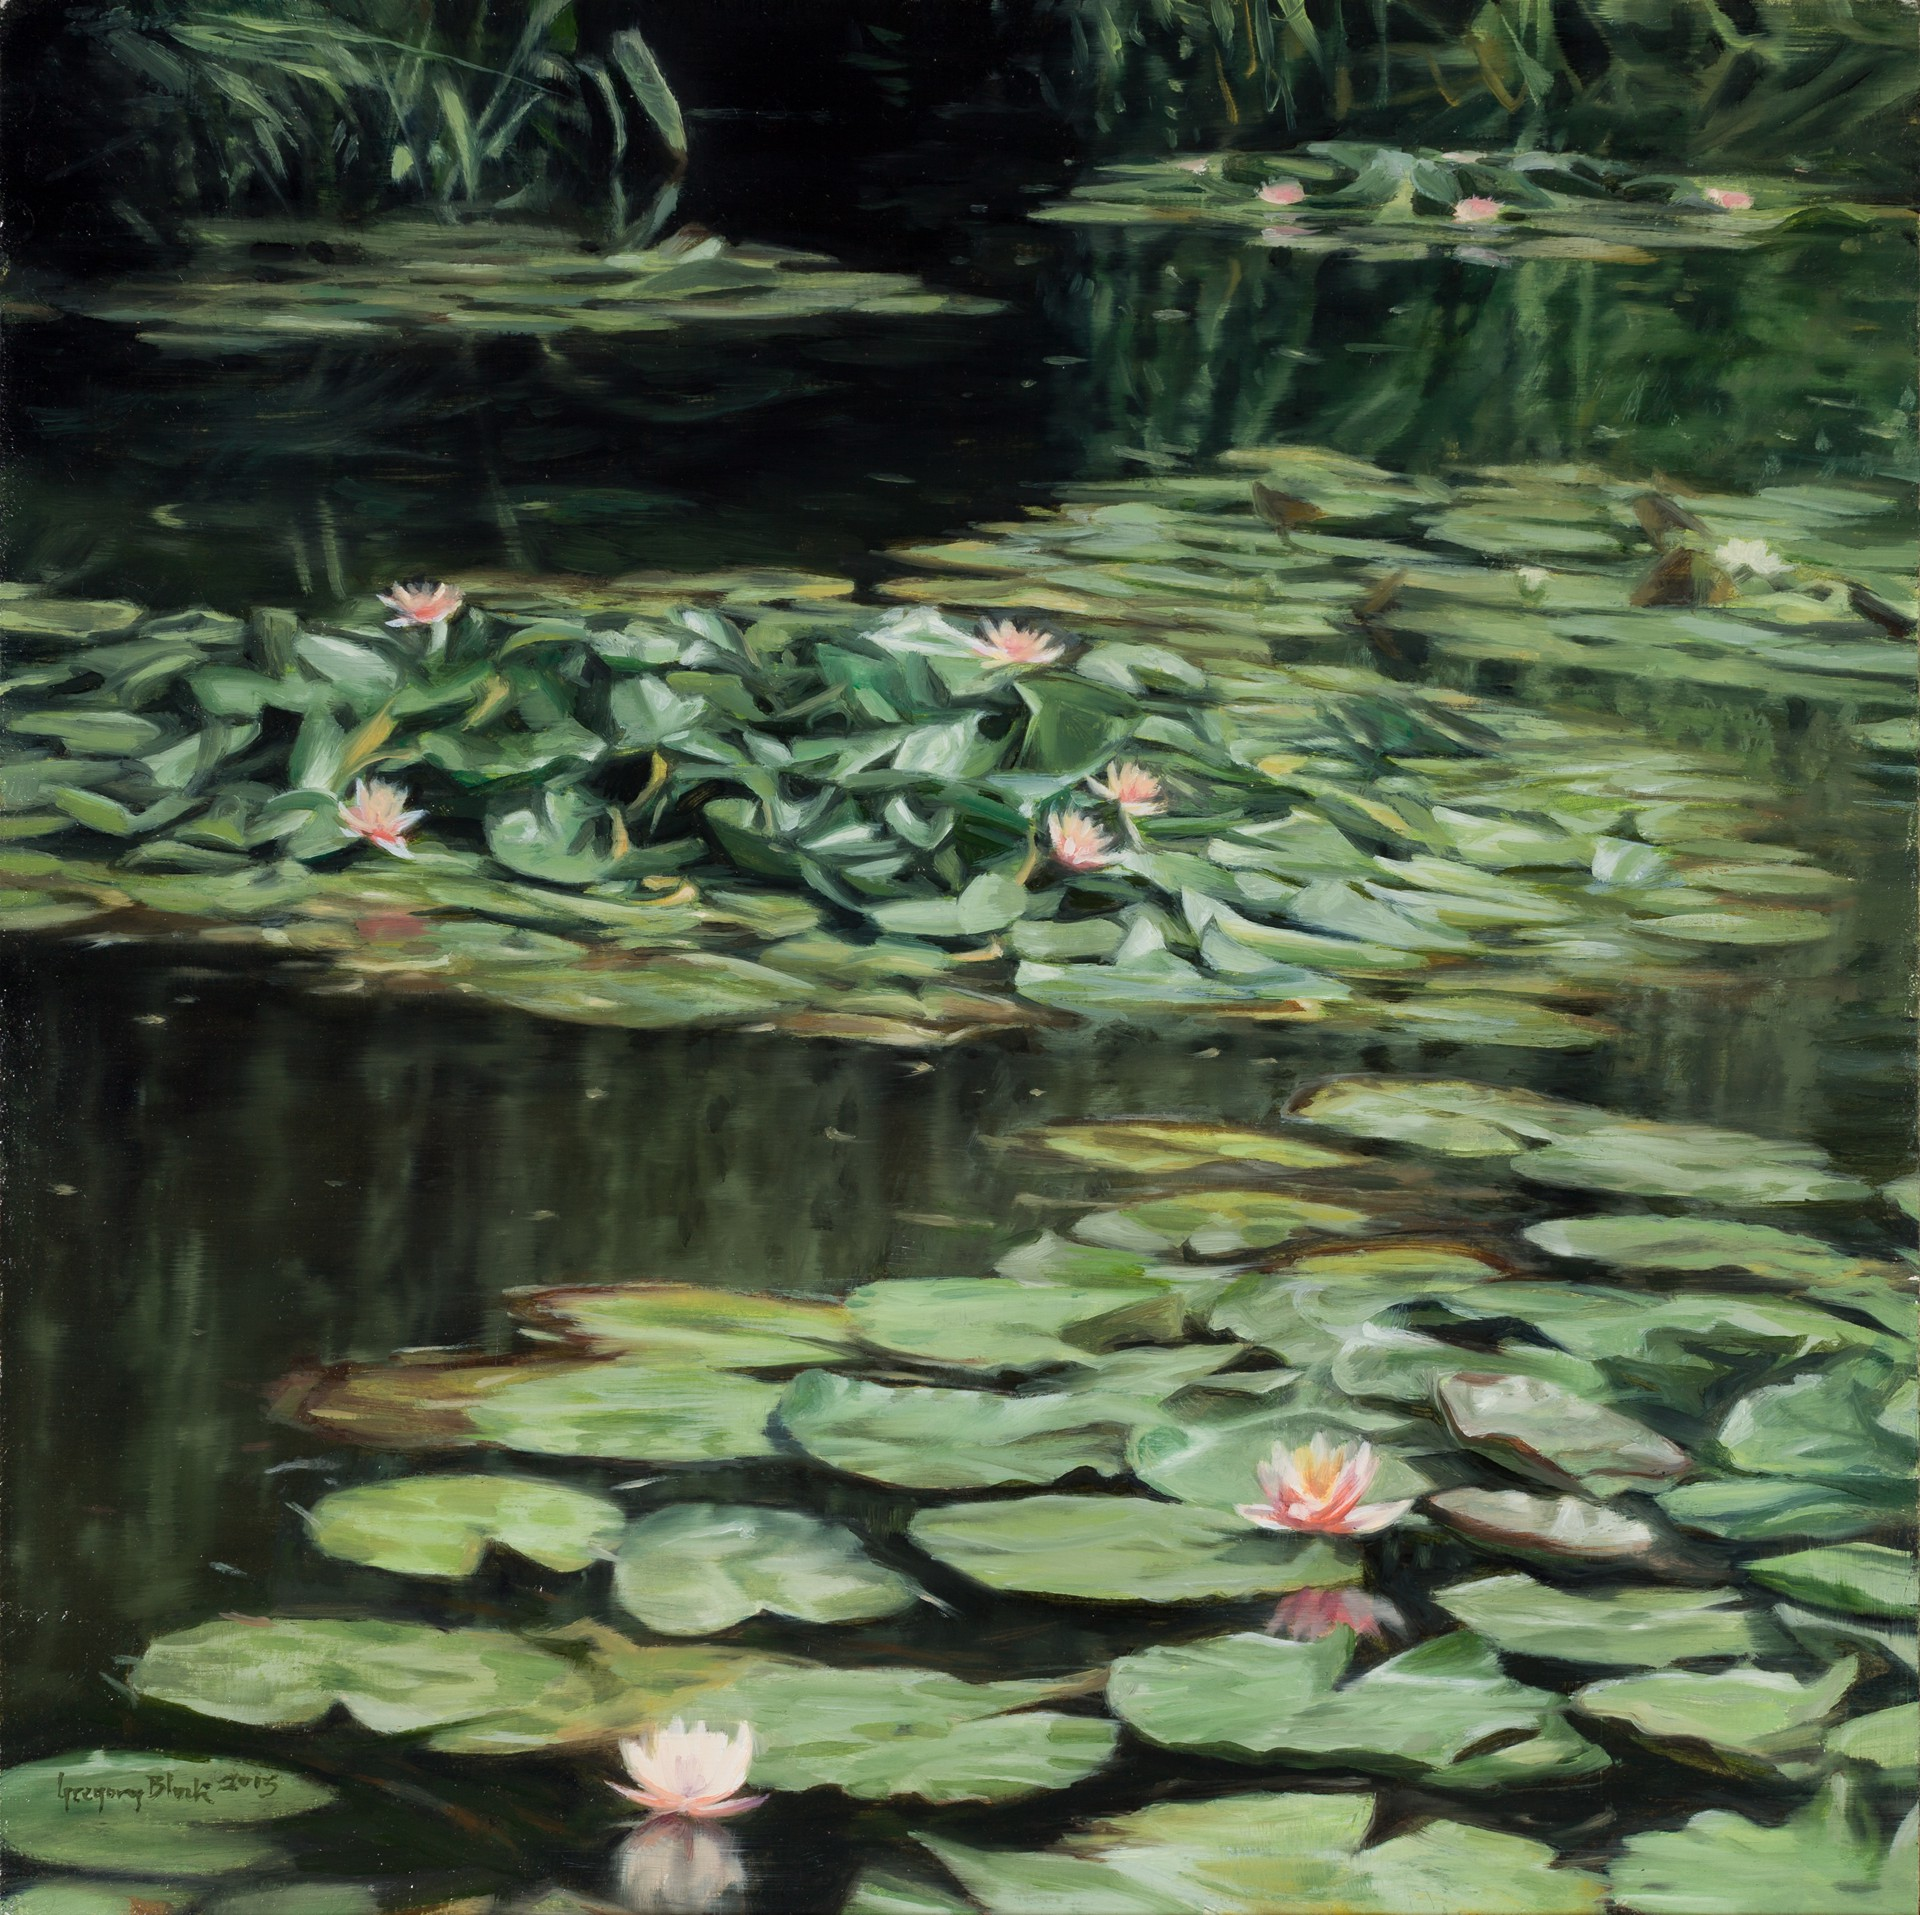 At Giverny by Gregory Block